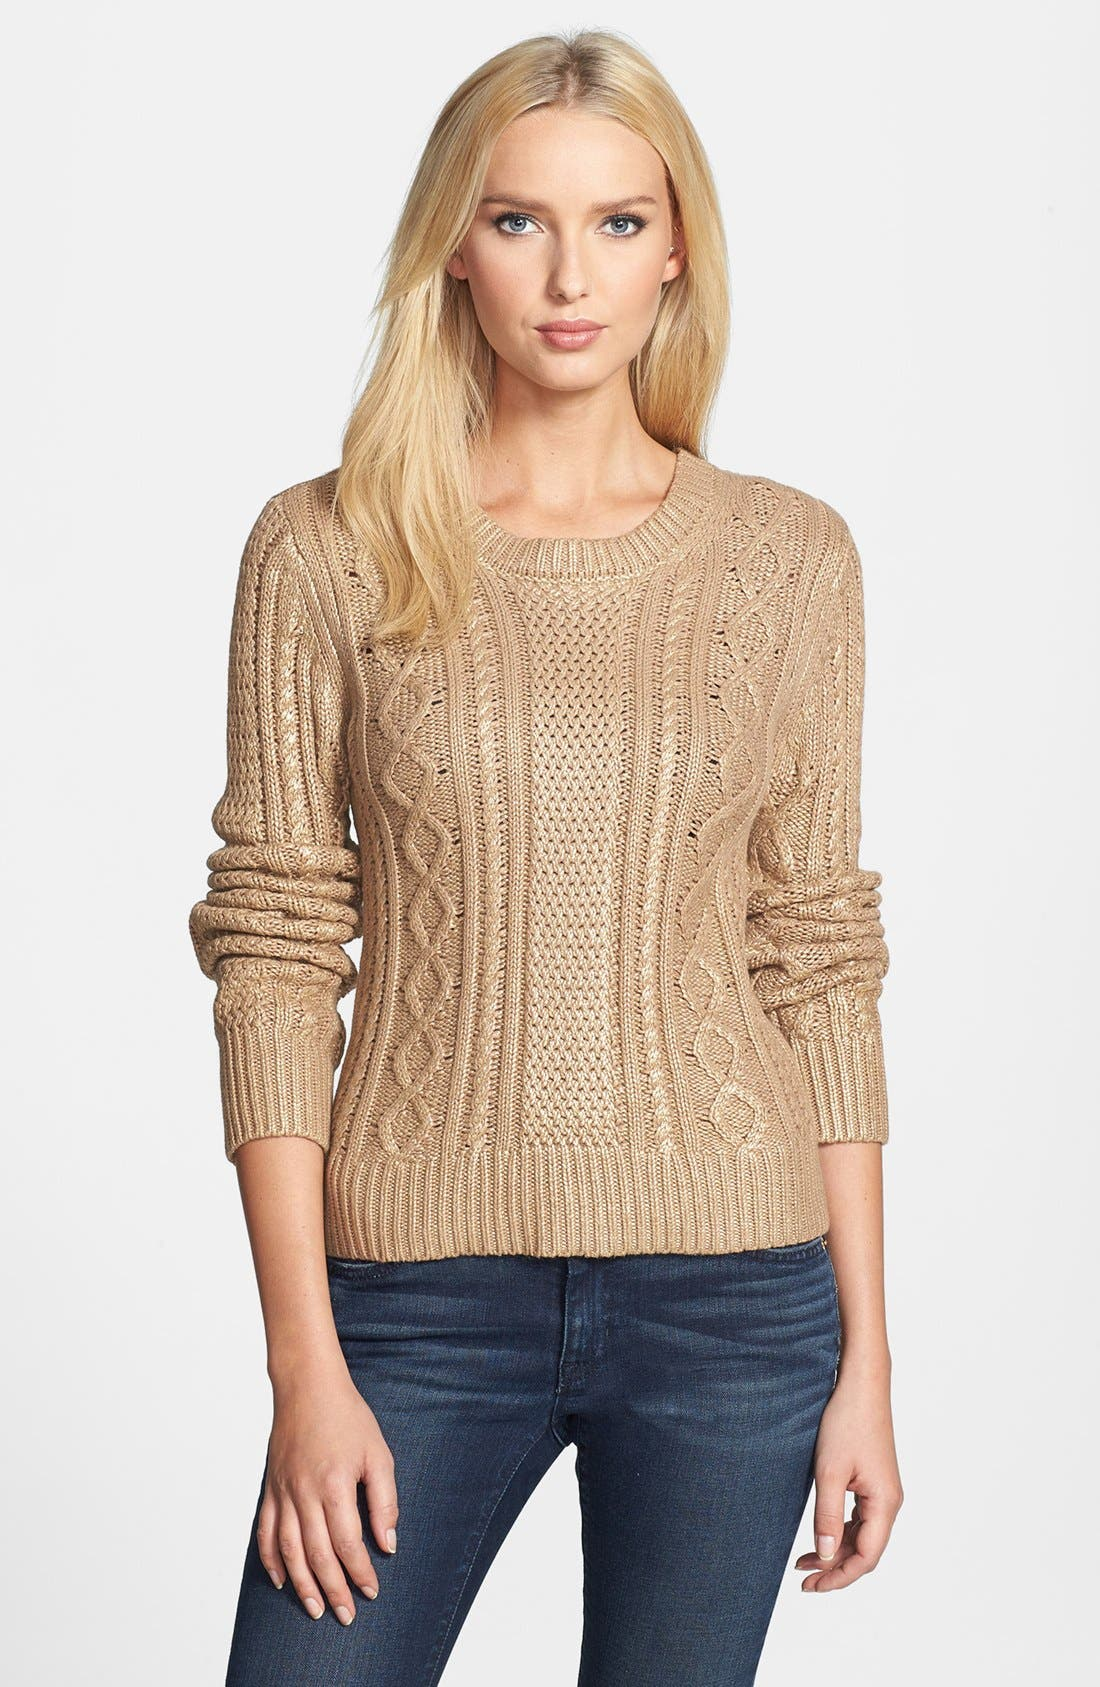 Main Image - MICHAEL Michael Kors Foiled Cable Knit Cotton Blend Sweater